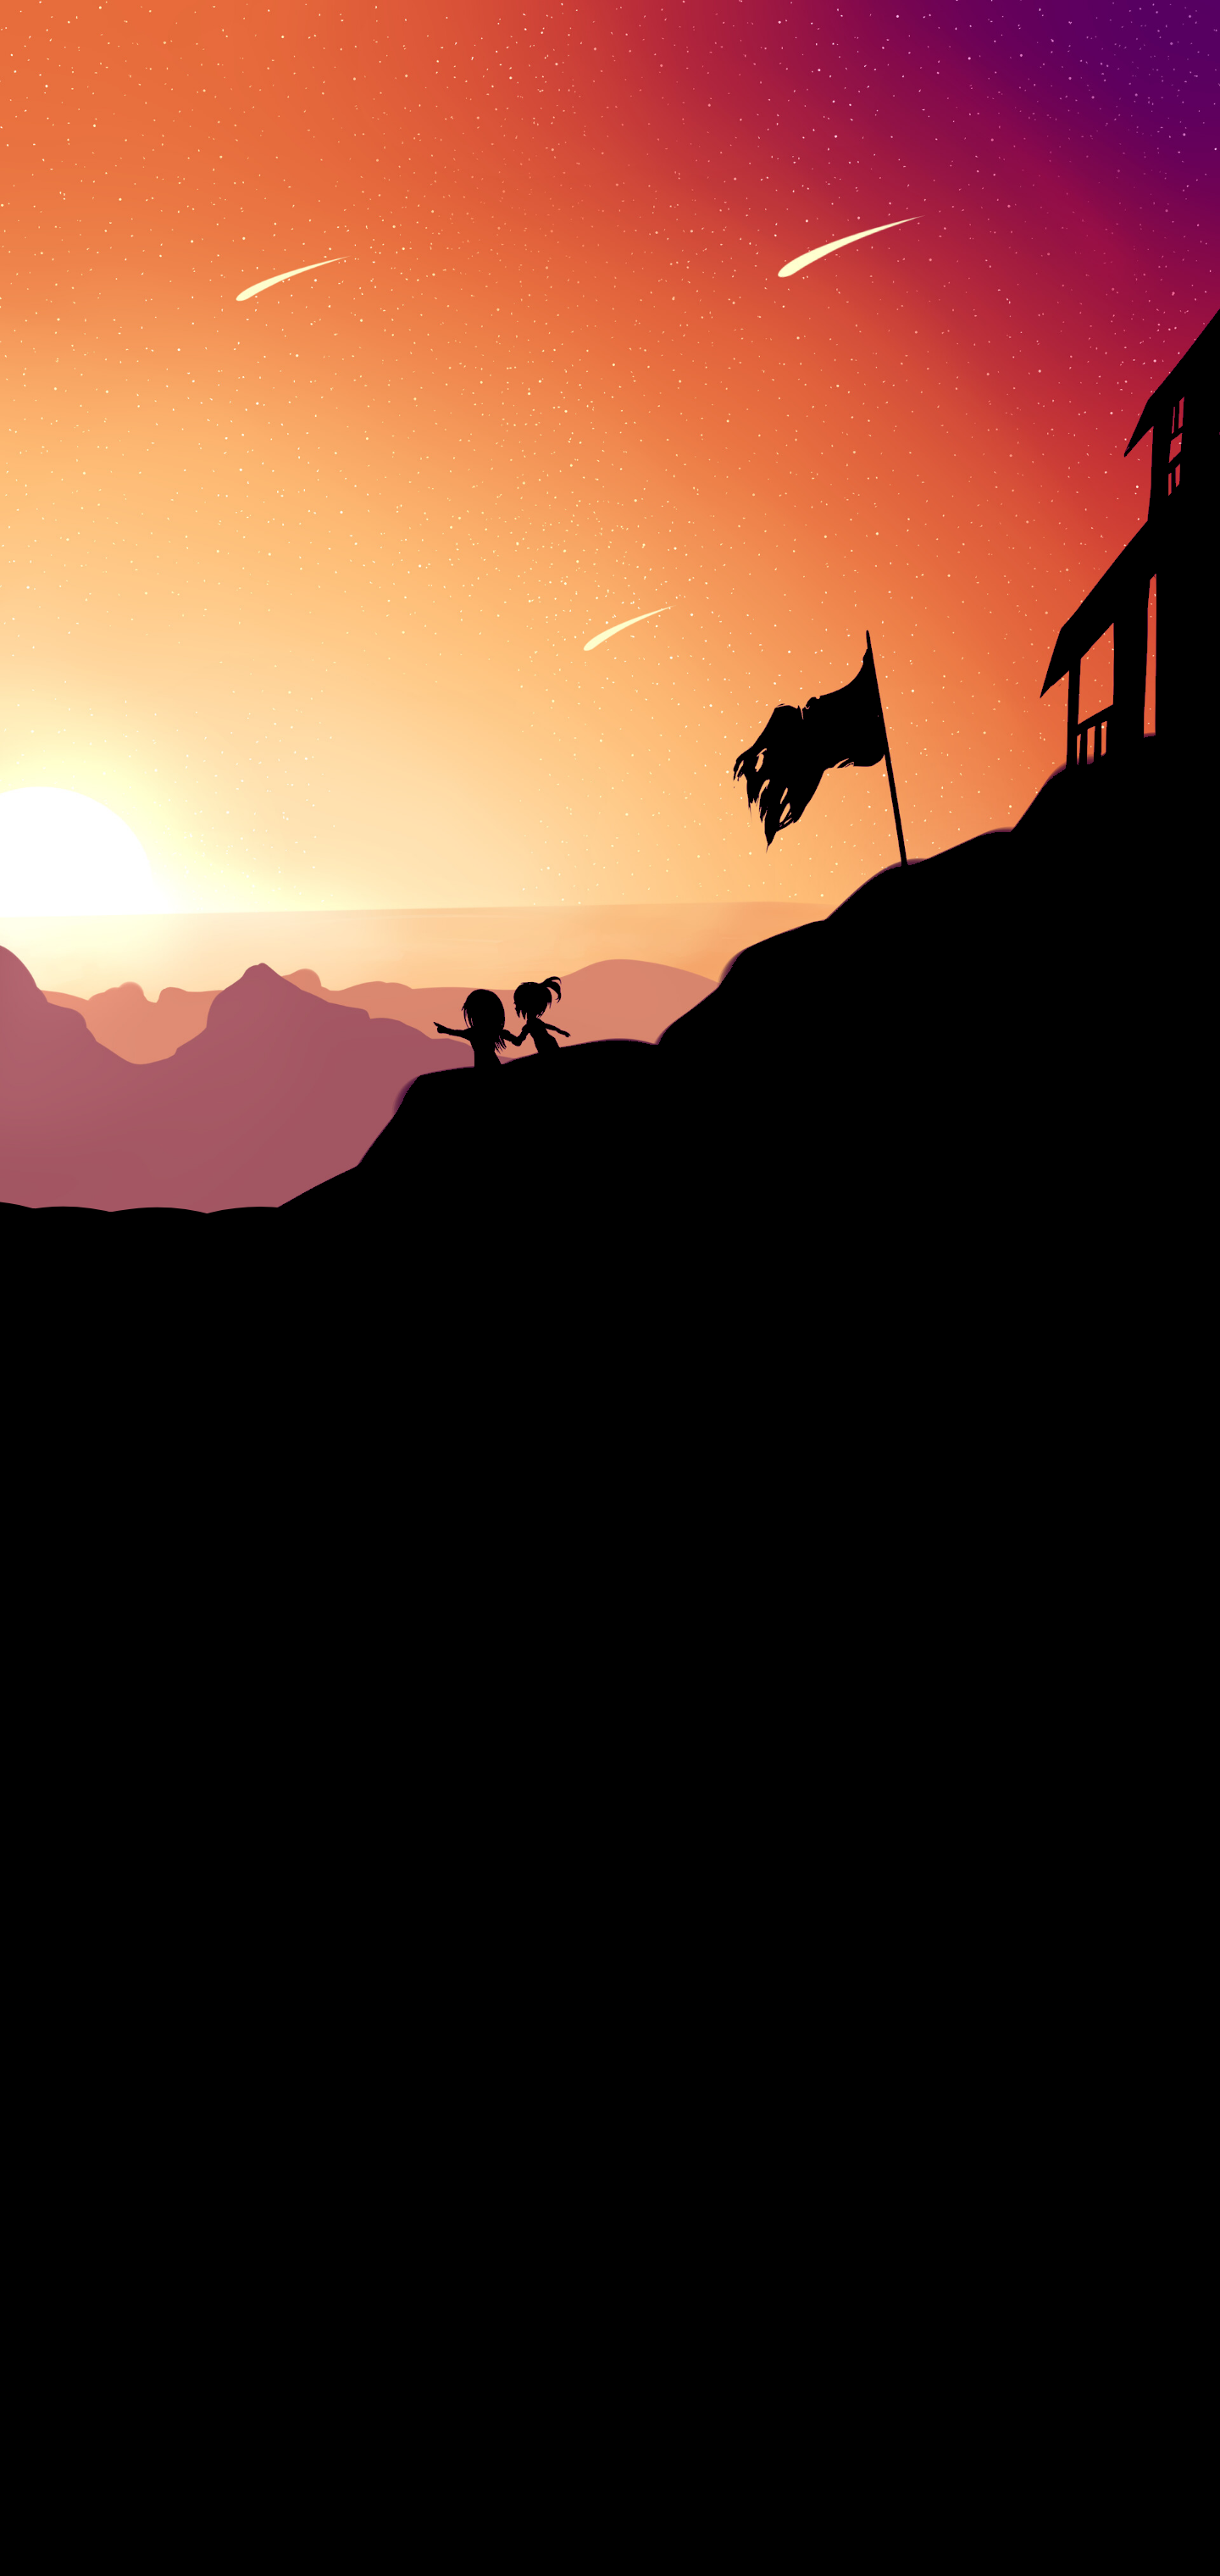 OLED wallpaper idownloadblog kids mountain peak